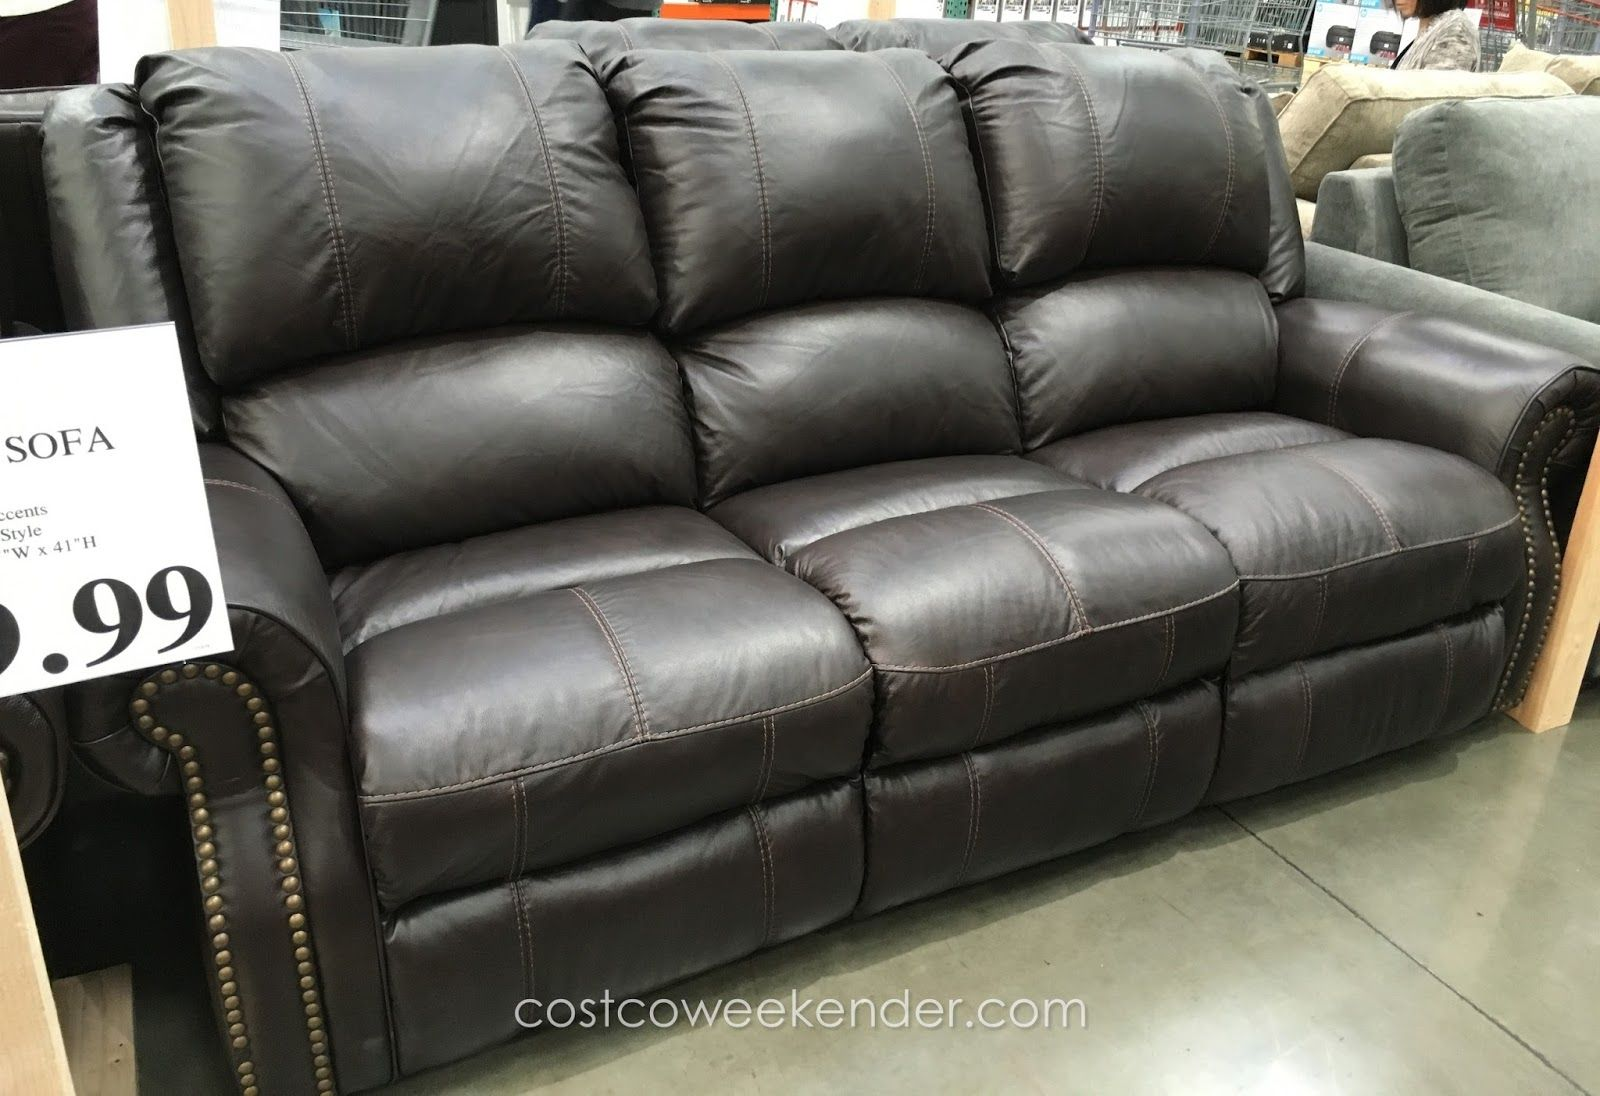 Berkline Leather Reclining Sofa Costco Weekender With Images